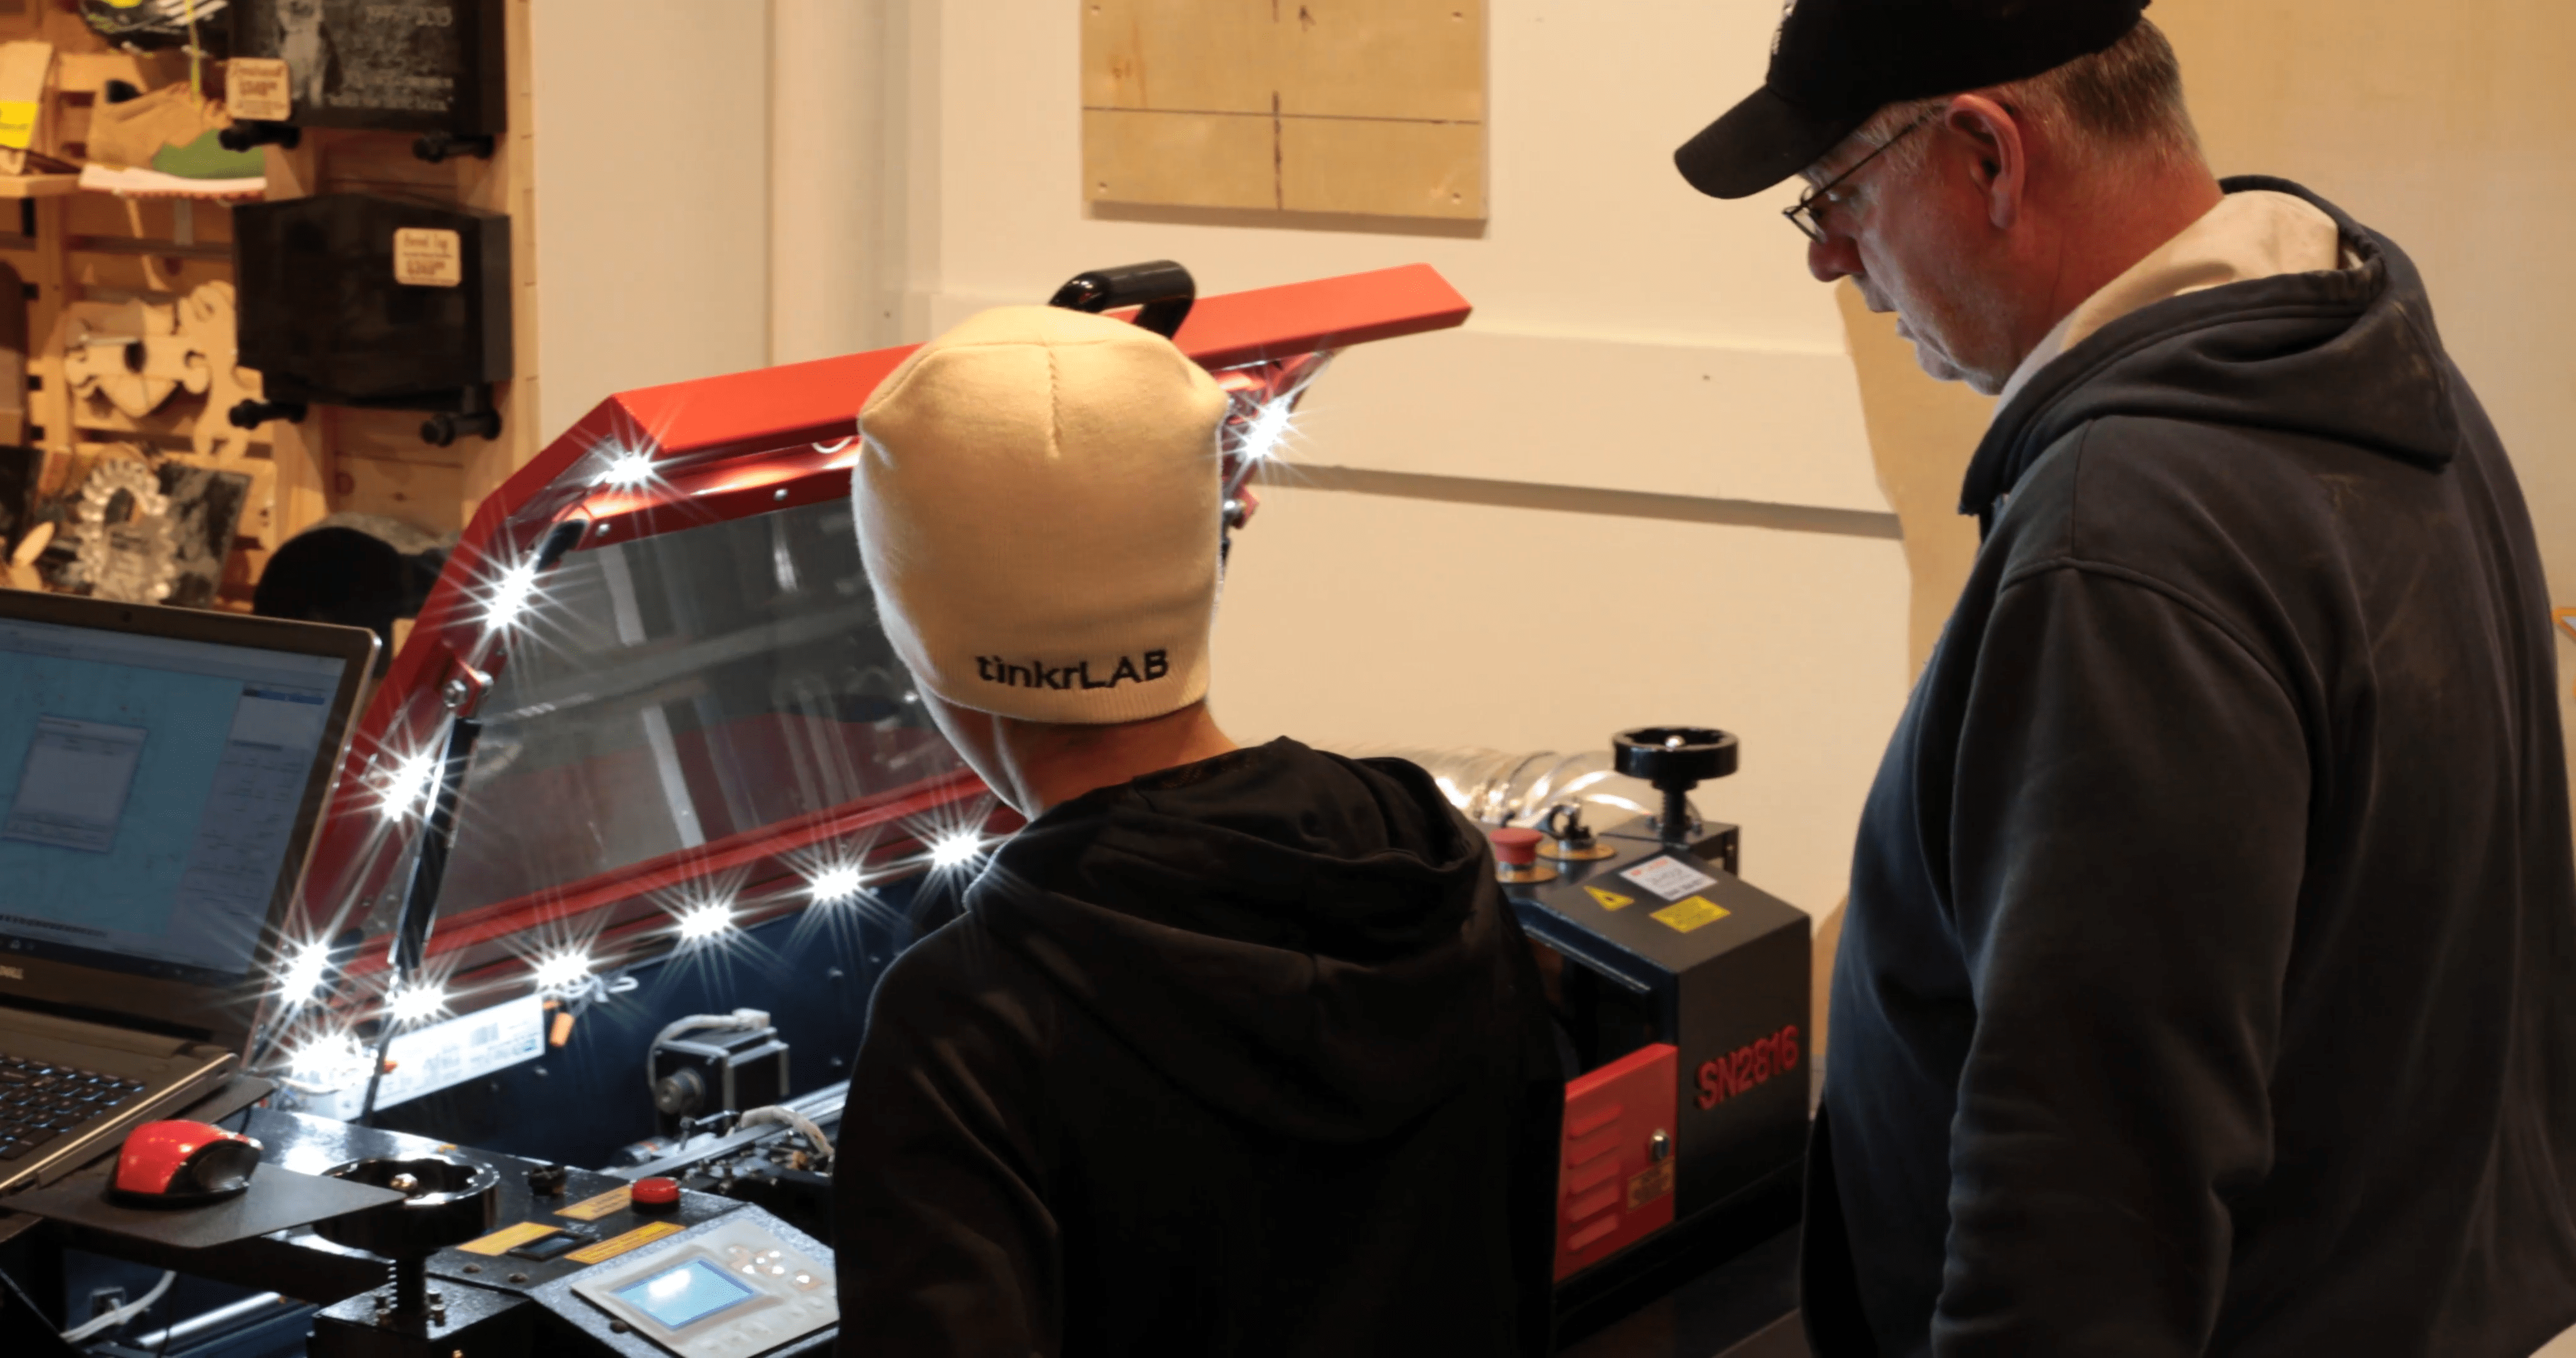 father and son learning AP Lazer